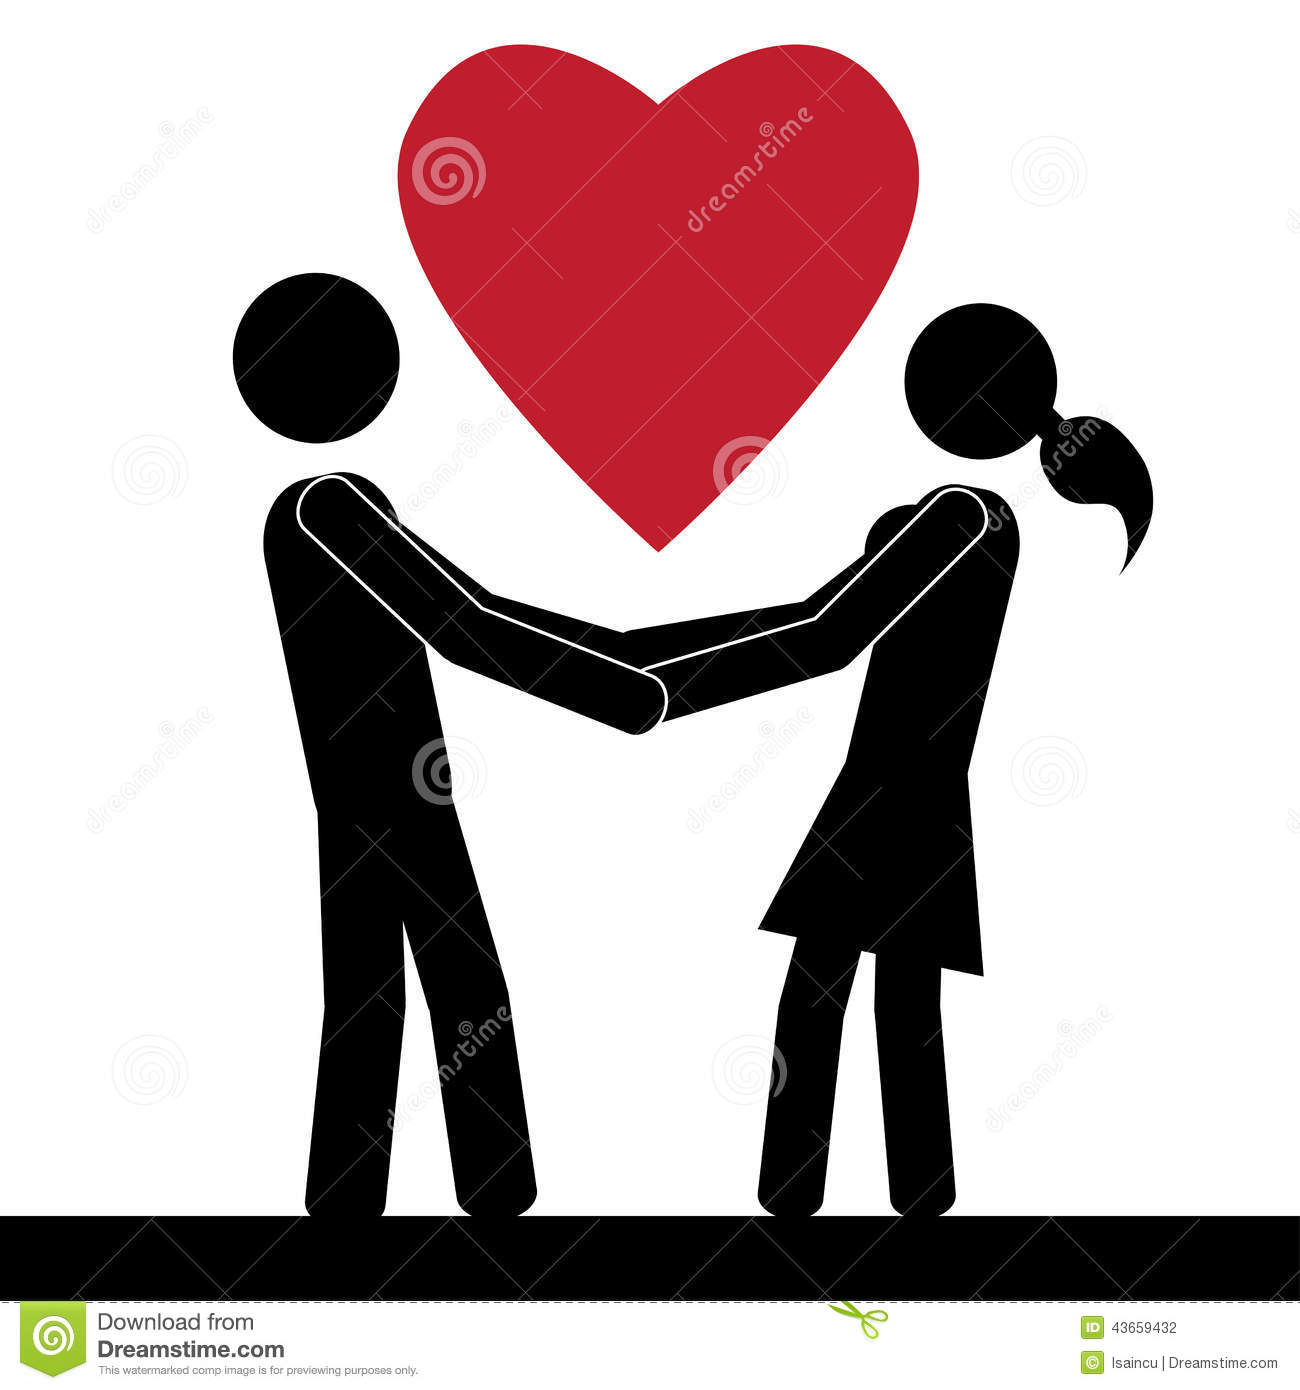 People in a heart holding hands clipart banner free stock Hands Holding Heart Clipart   Free download best Hands ... banner free stock